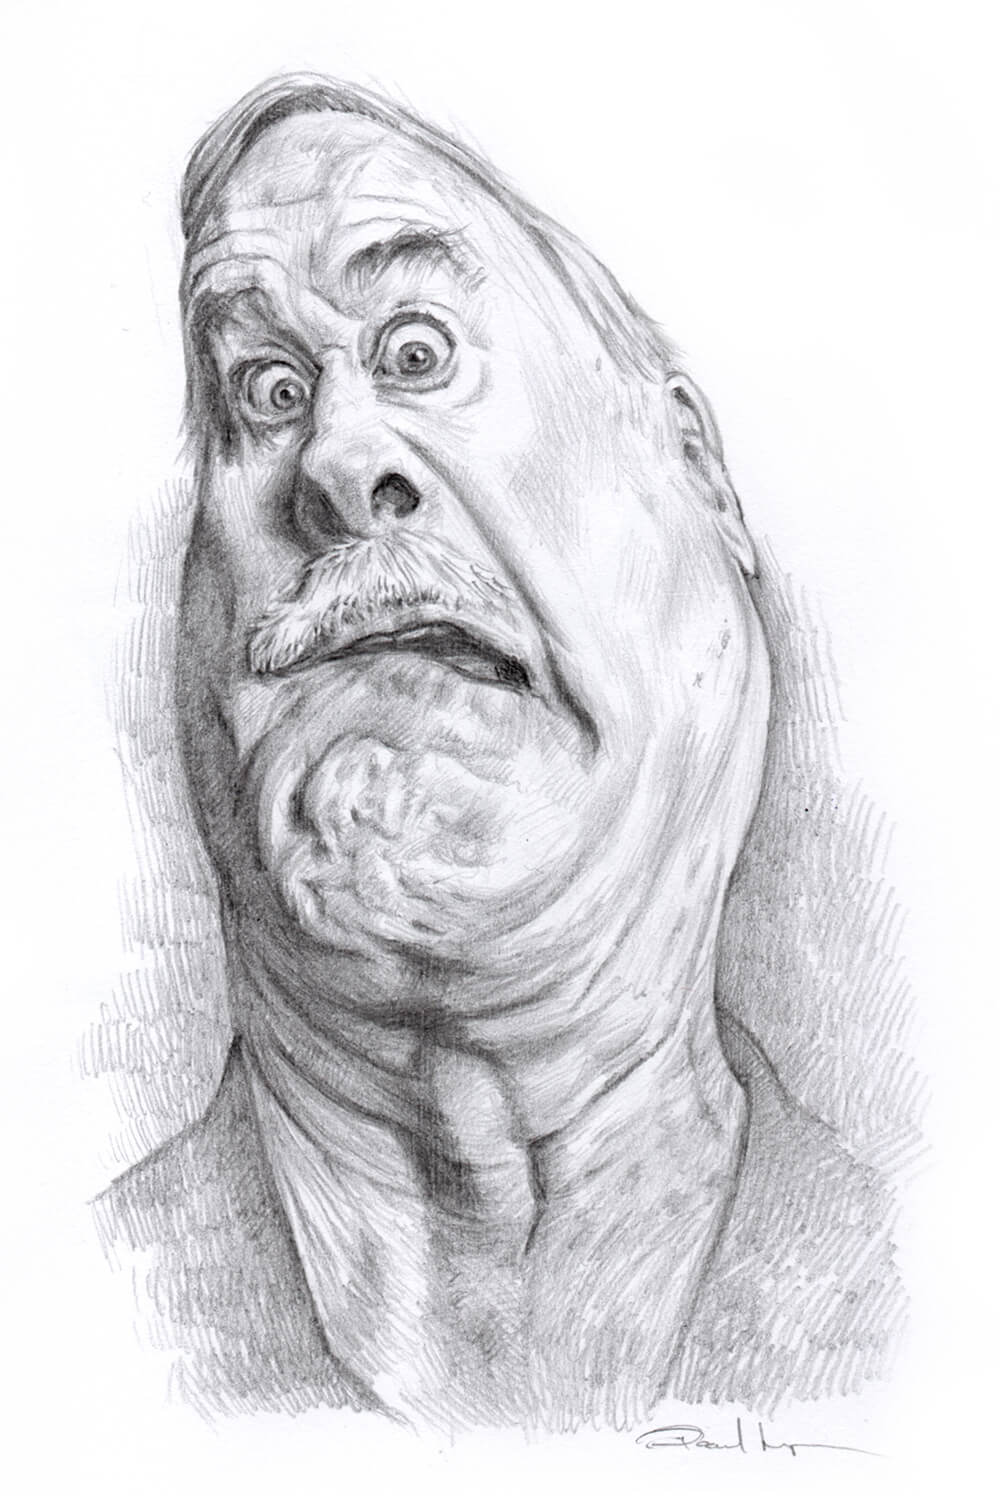 John Cleese - Pencil on PaperImage size 110x180mm£75